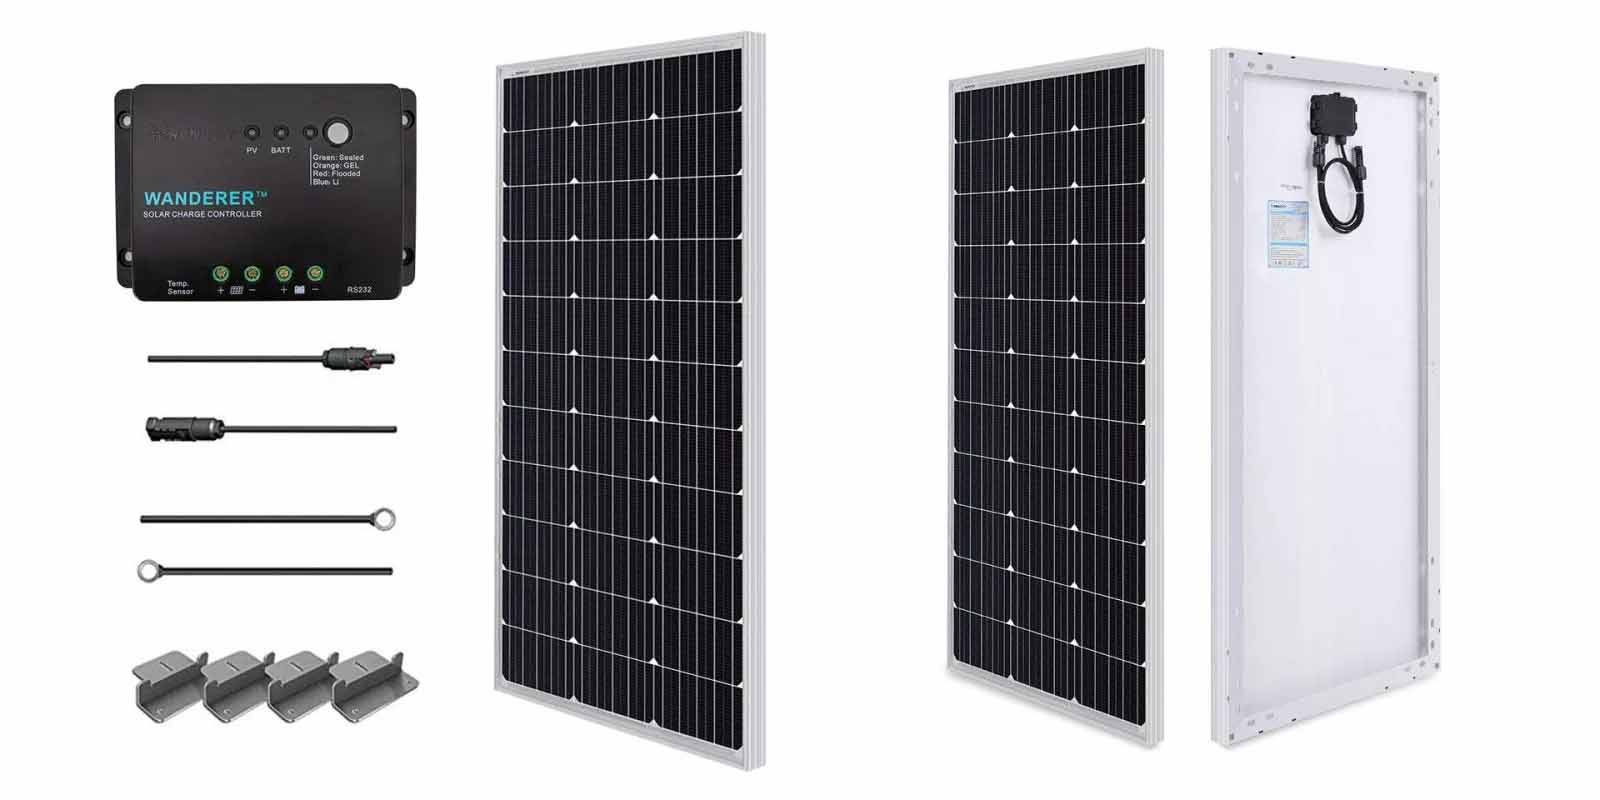 go-solar-w-todays-gold-box-renogy-sale-at-25-off-starter-kit-150-more